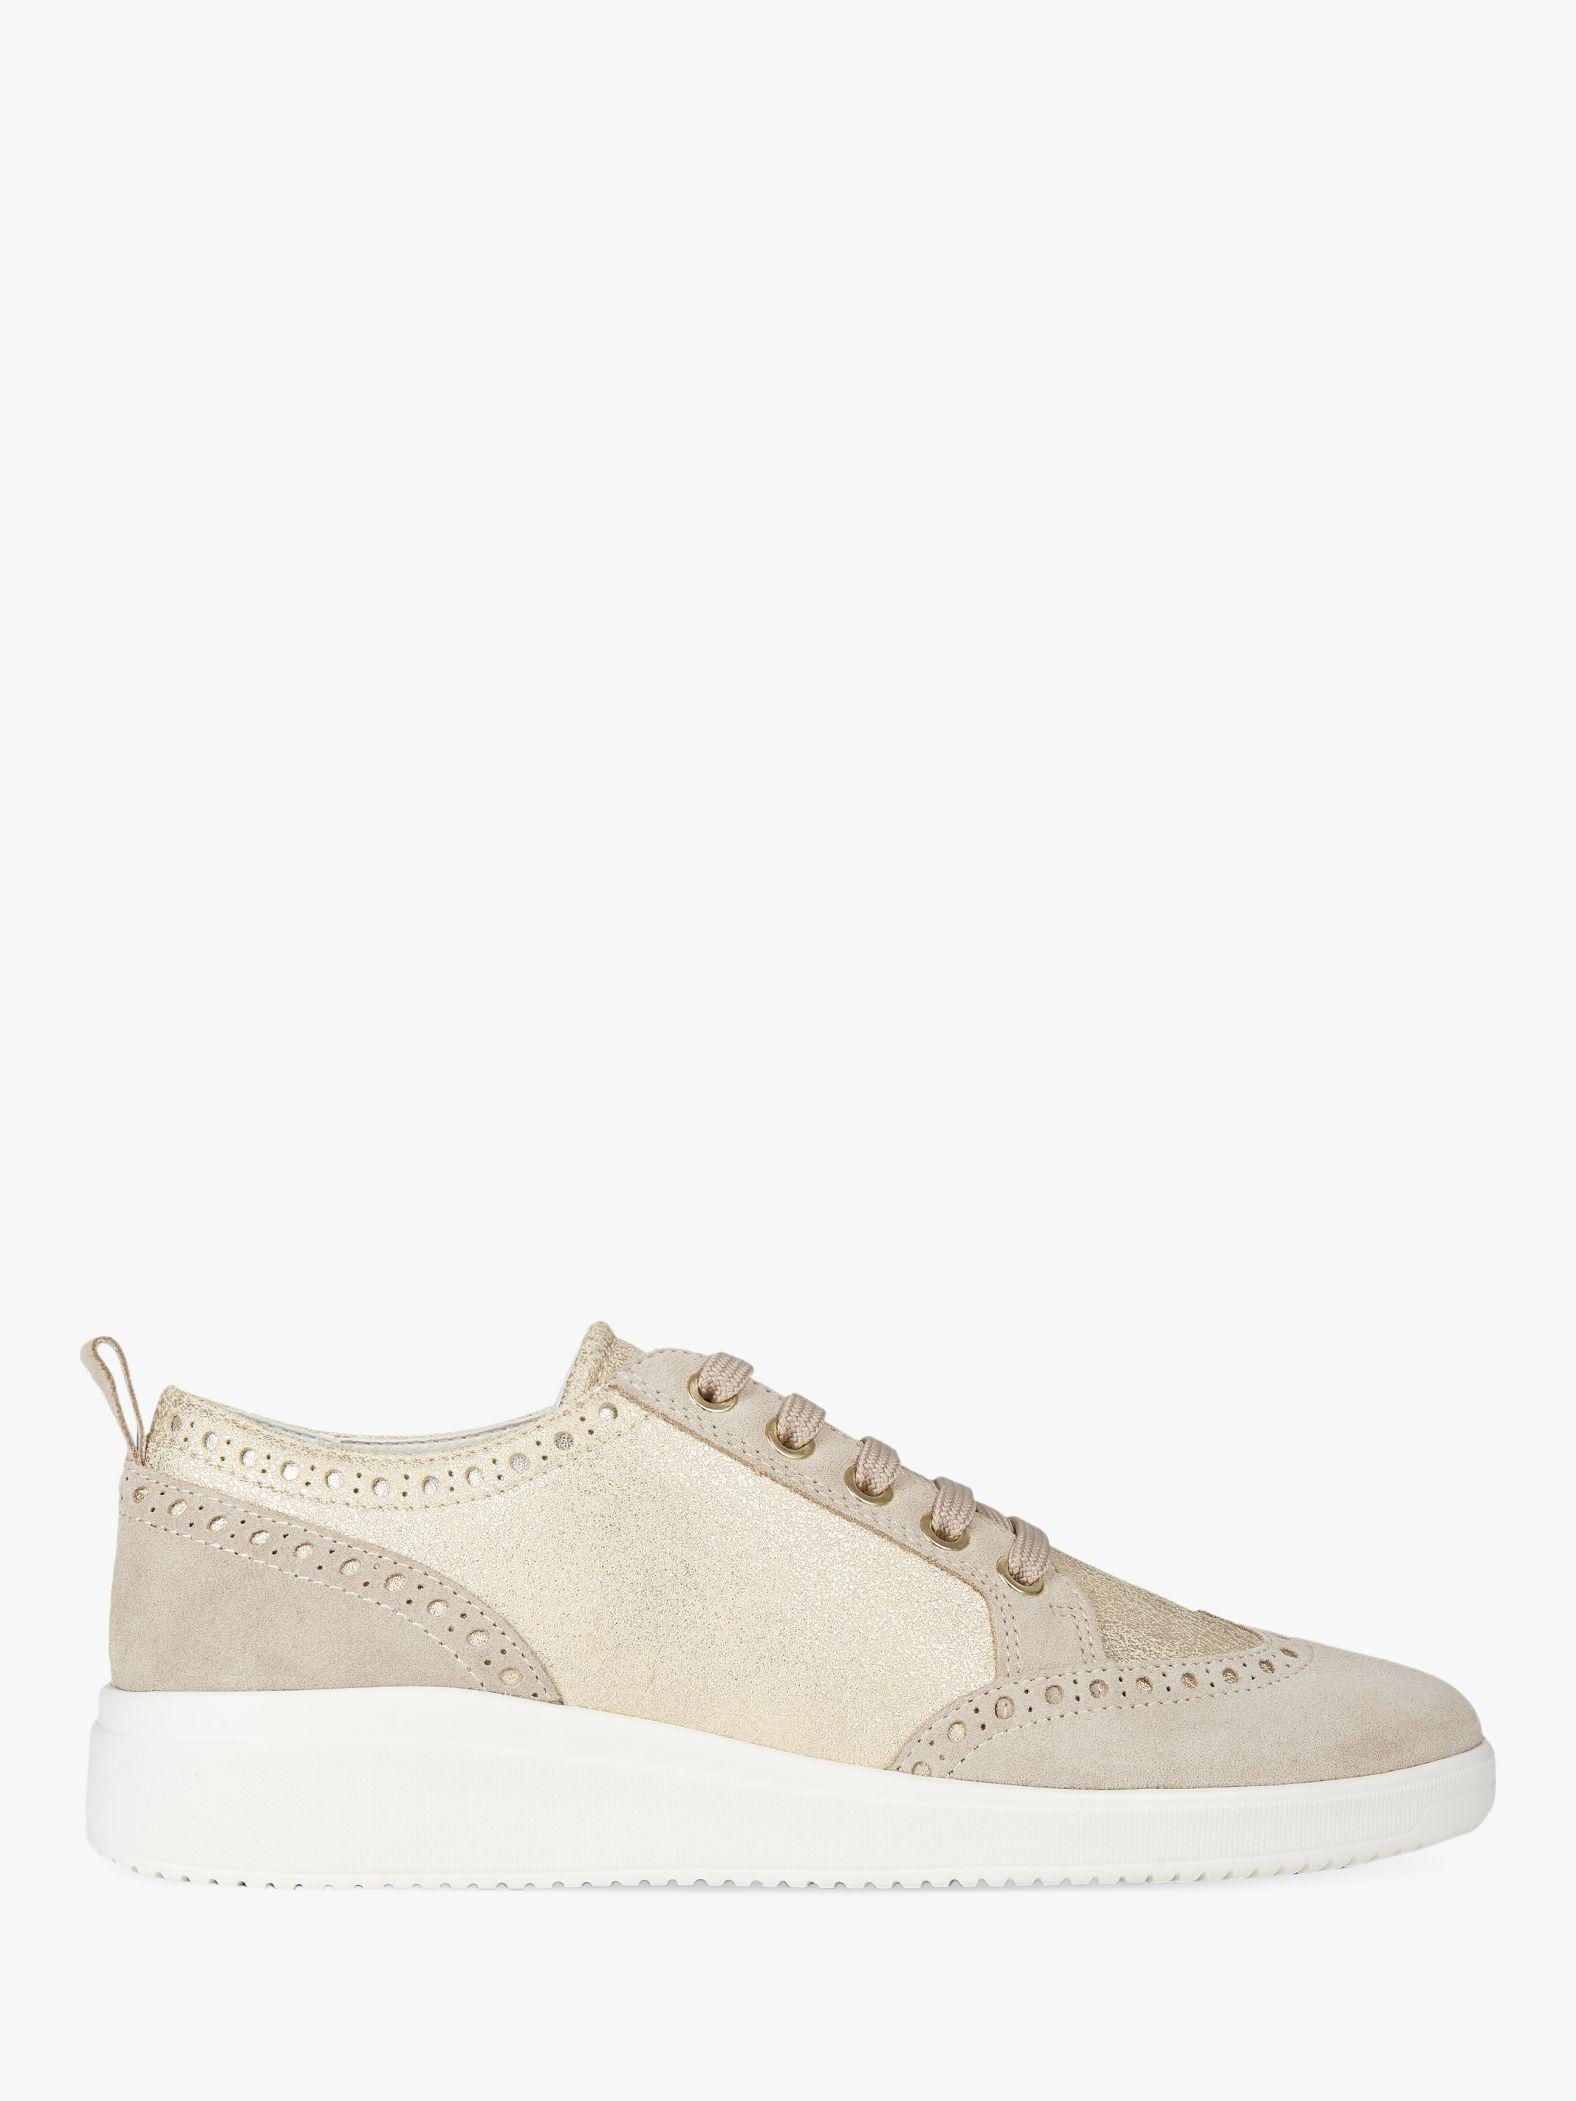 166297c572b1 Geox Women's Tahina Lace Up Trainers - Lyst